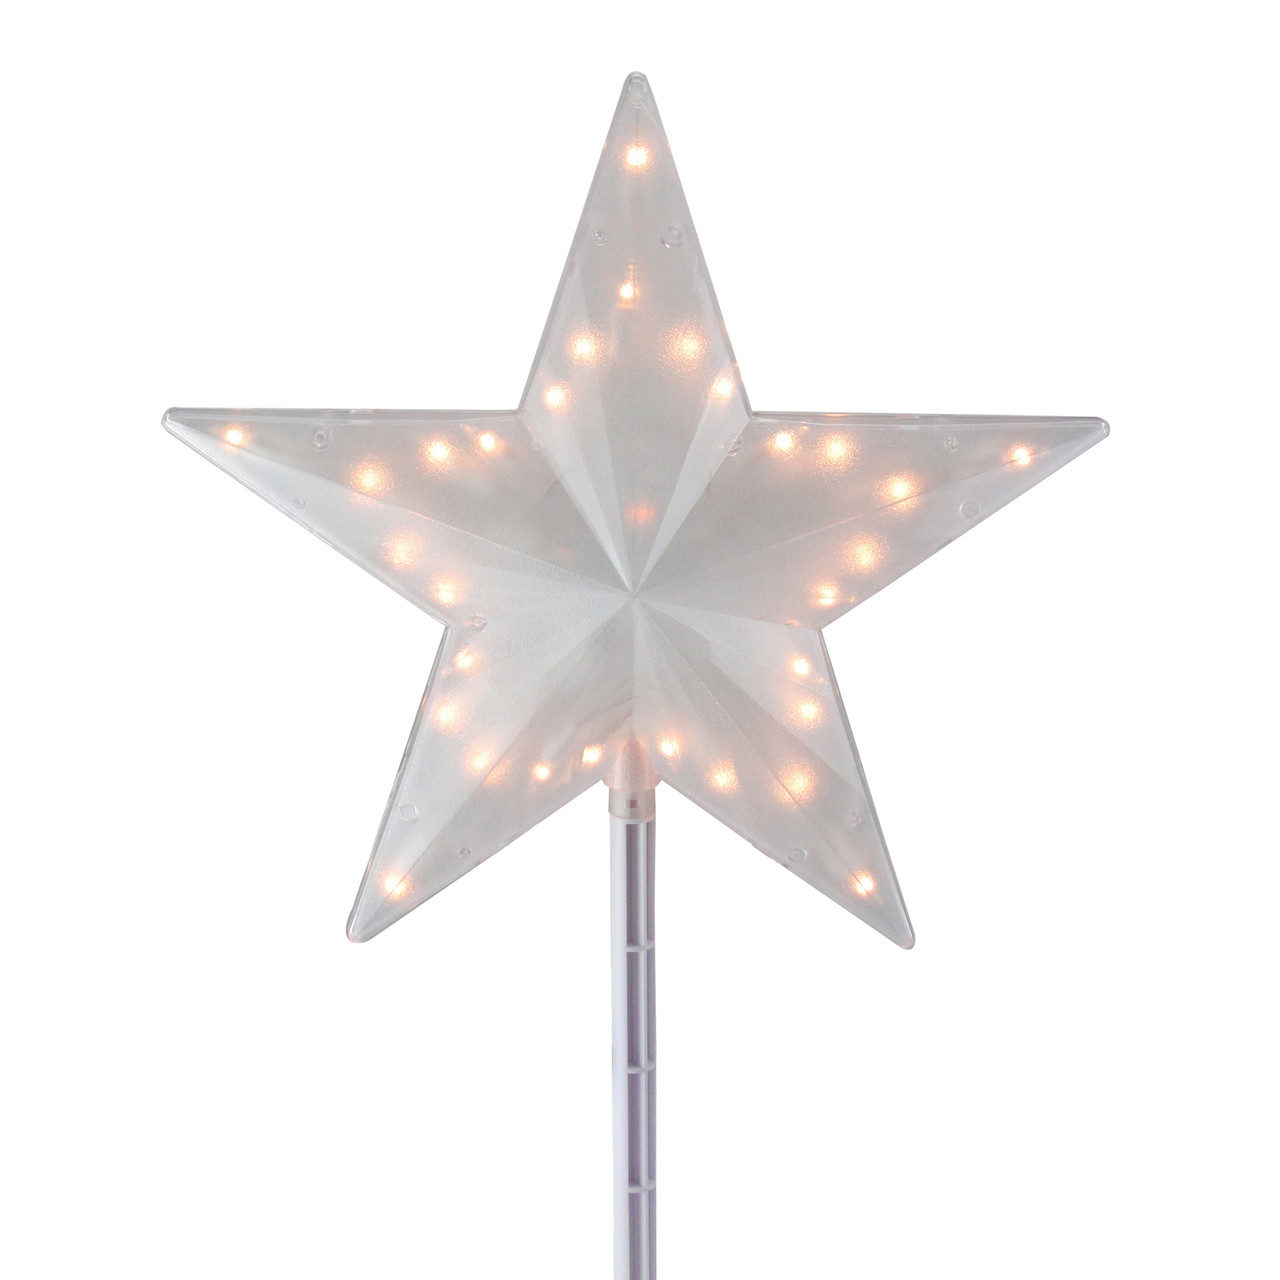 14 clear lighted twinkling christmas star tree topper or pathway marker 11297256